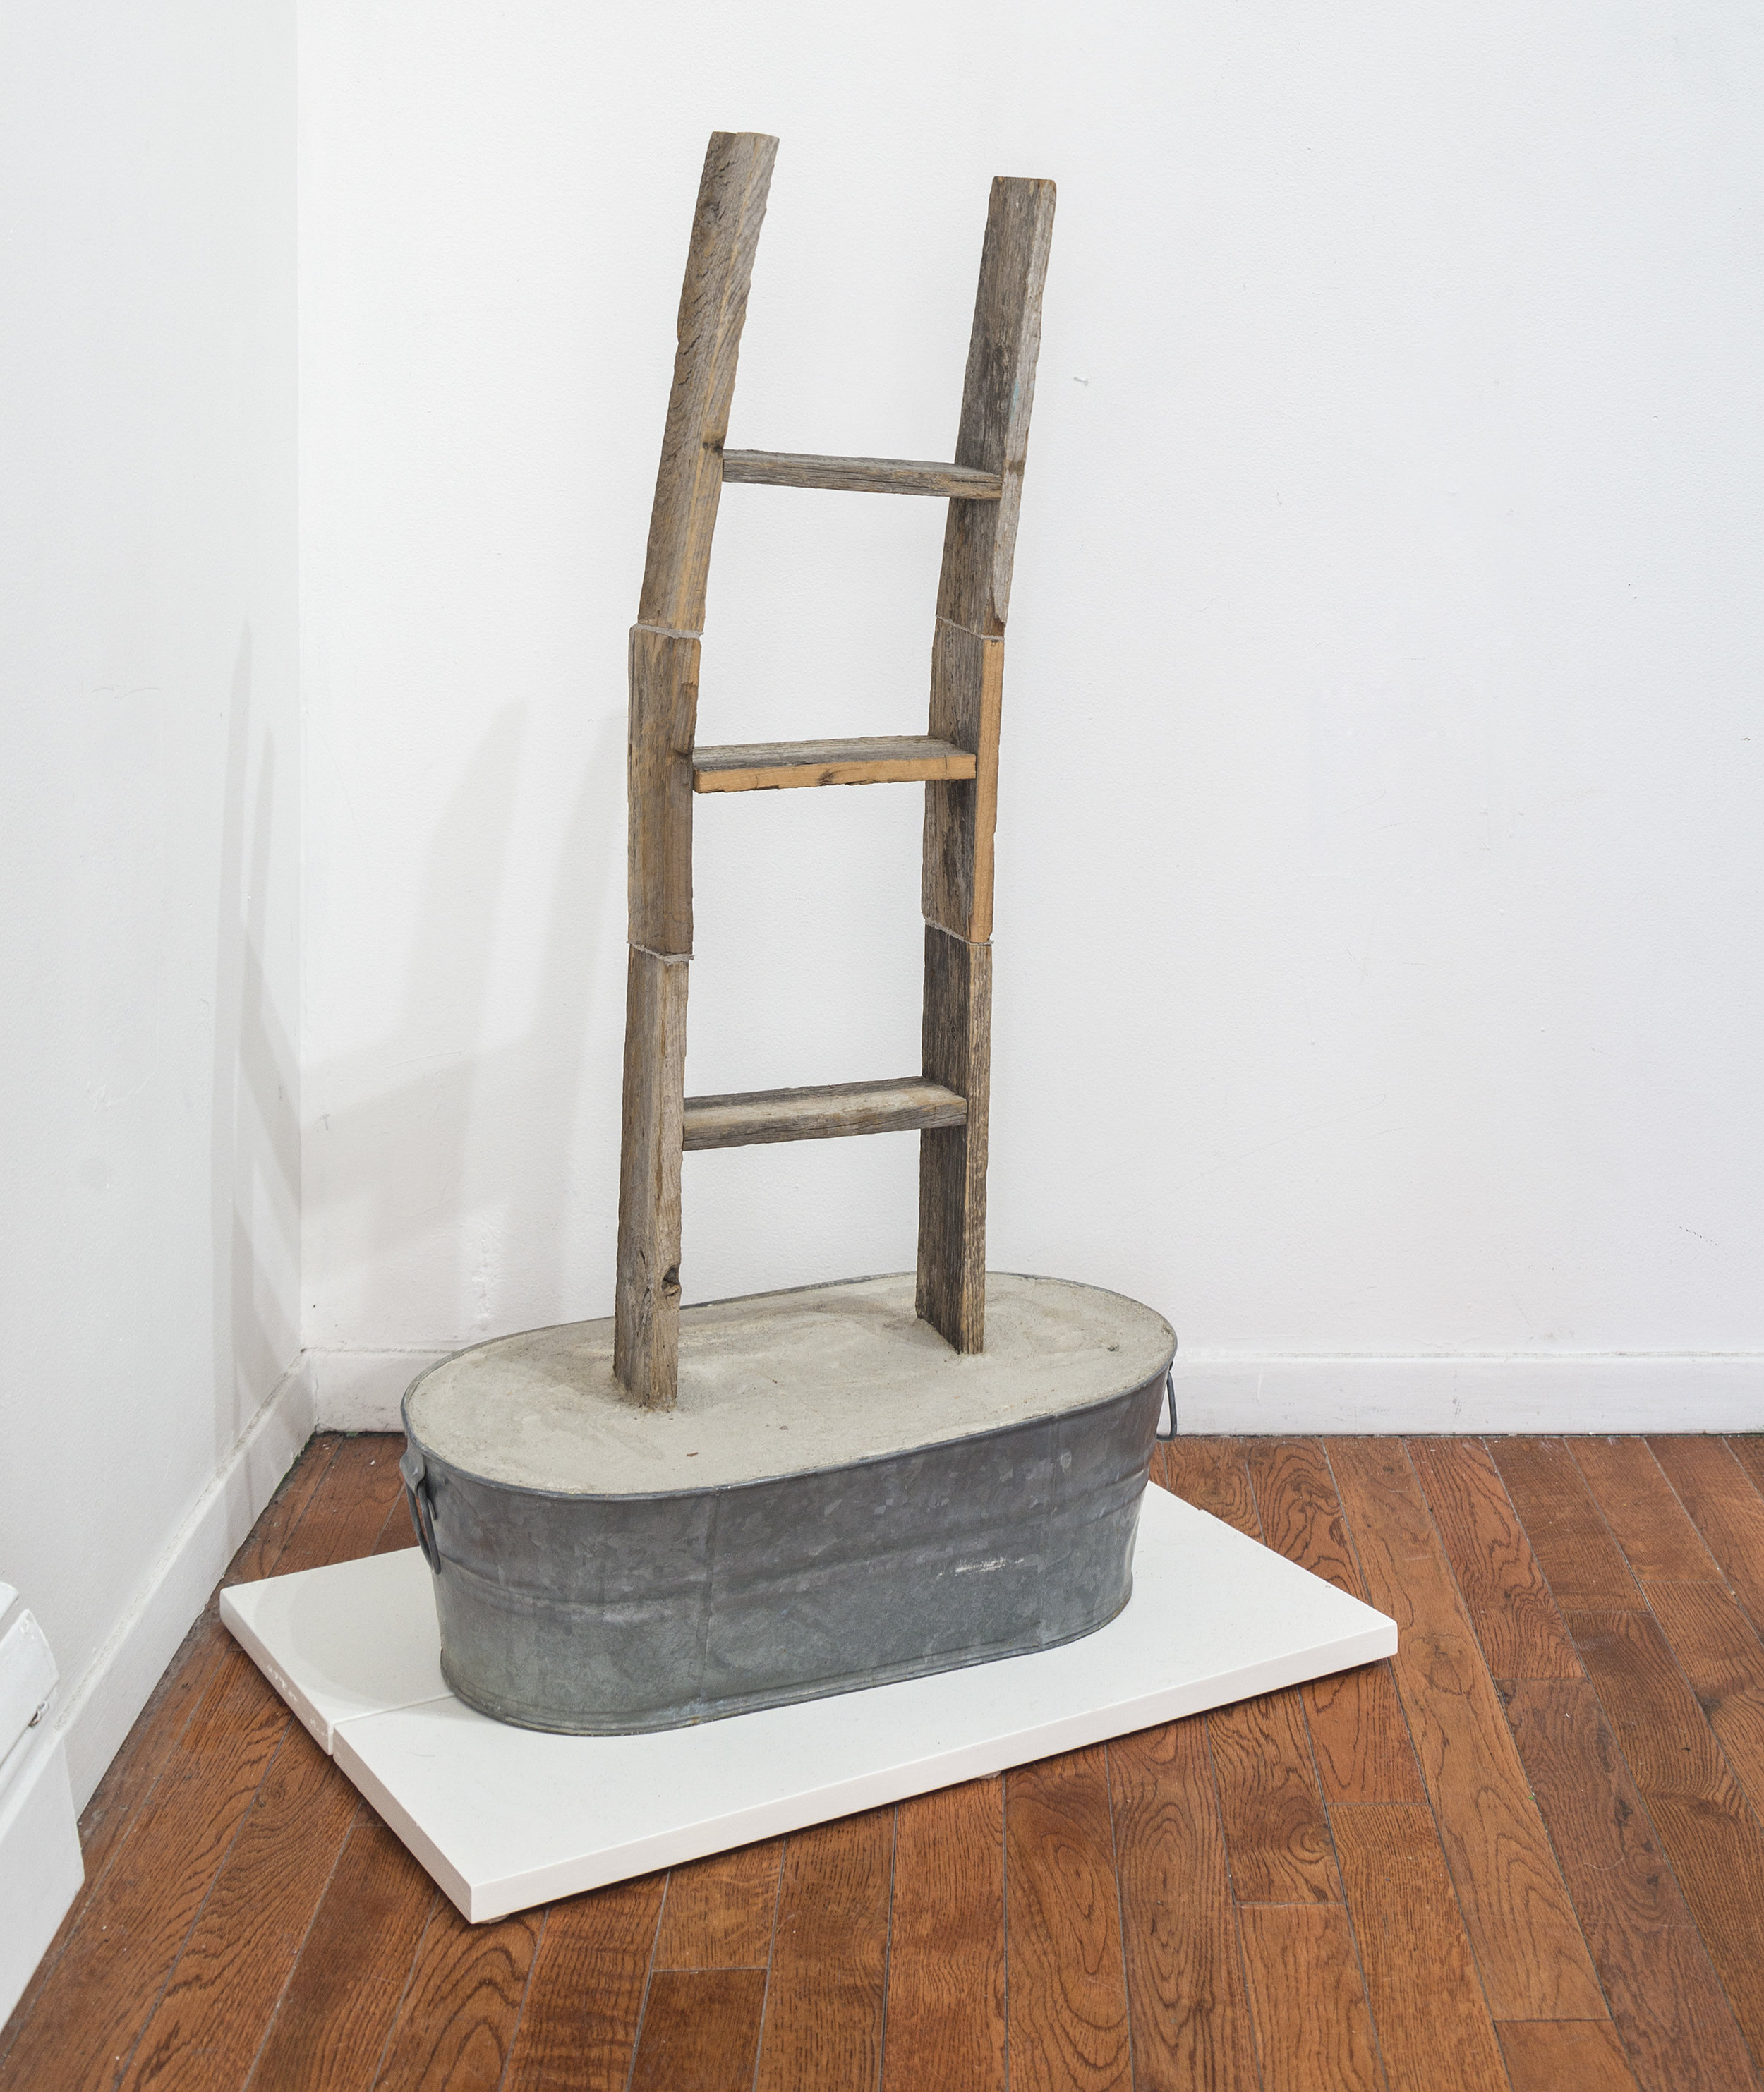 Sell your sin, 2019   Wooden ladder, metal plant pot, concrete on a pedestal 26x12x18 inches